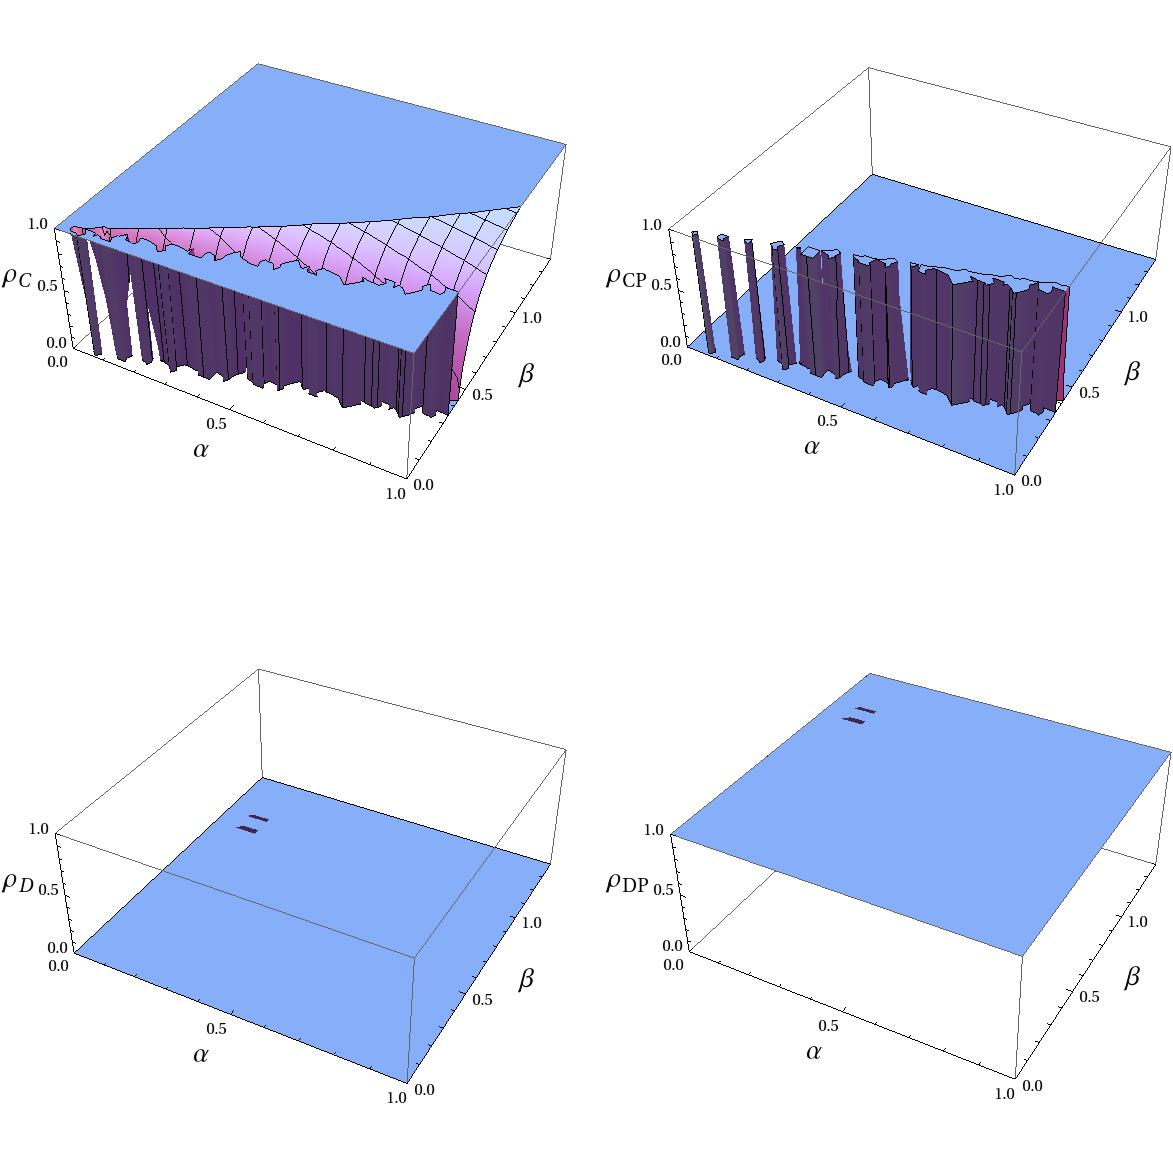 The frequencies of four strategies based on spatial replicator equation, as function of